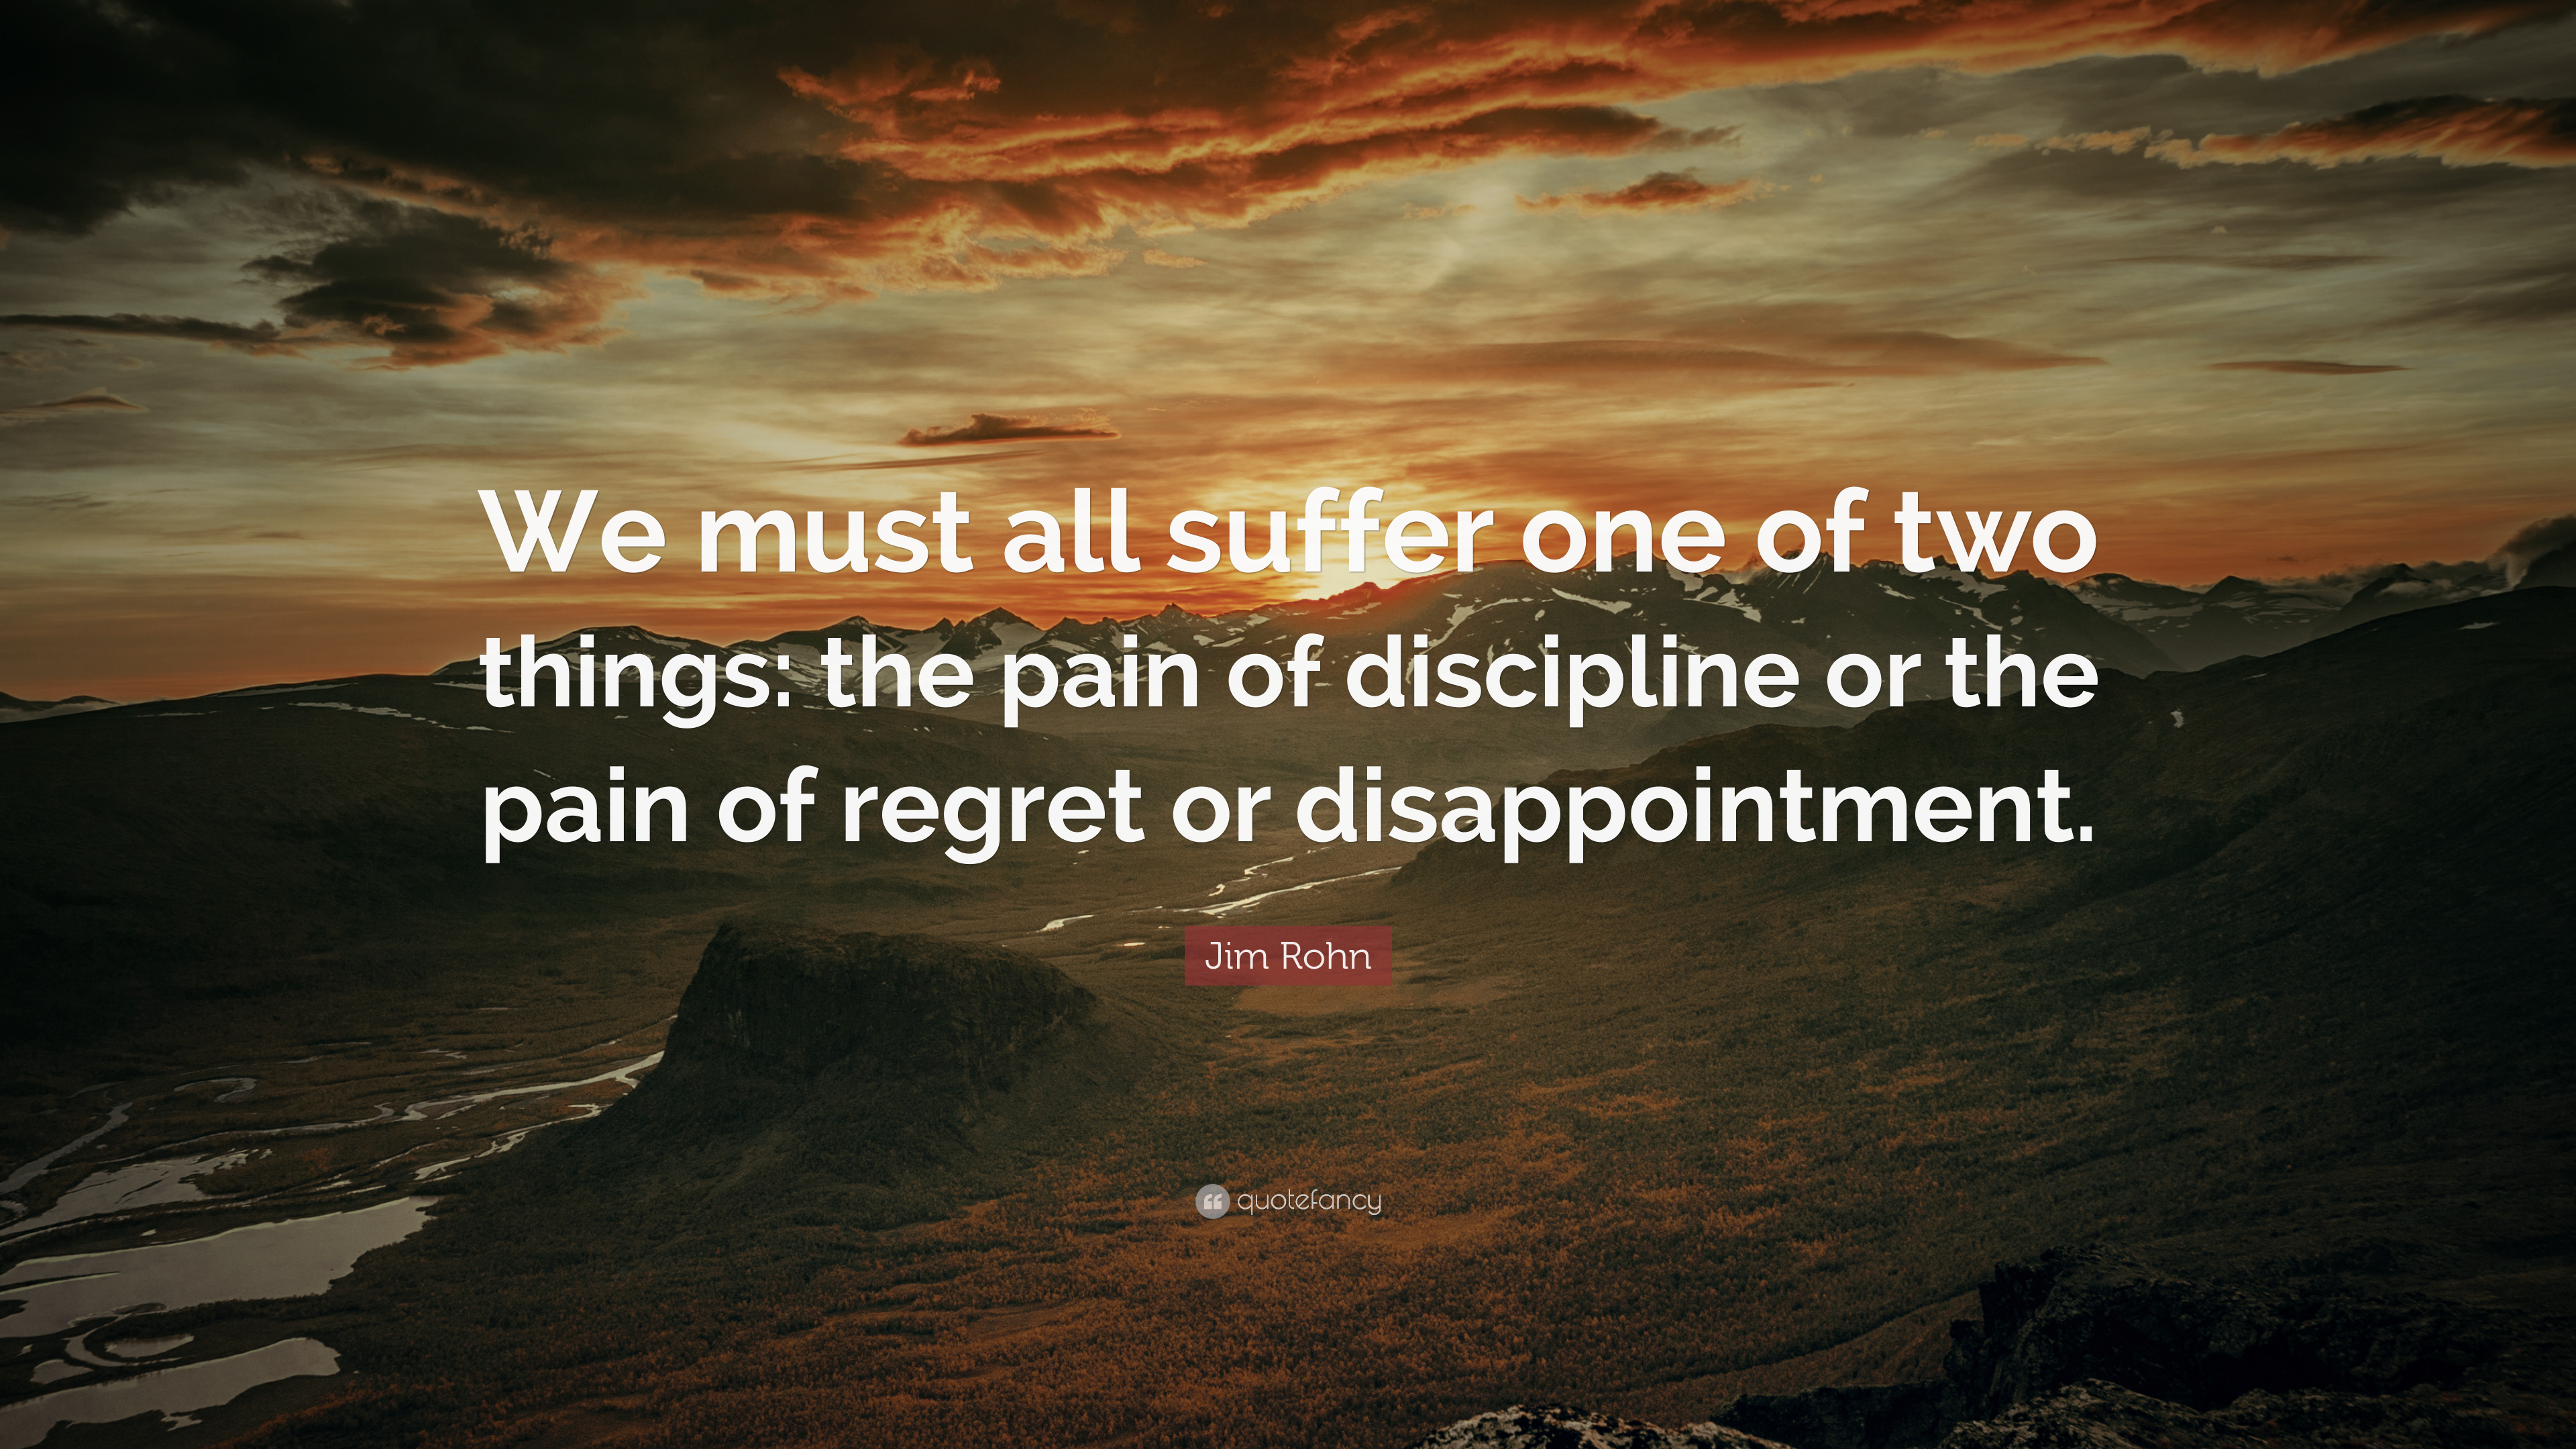 Elon Musk Quotes Wallpapers Jim Rohn Quote We Must All Suffer One Of Two Things The